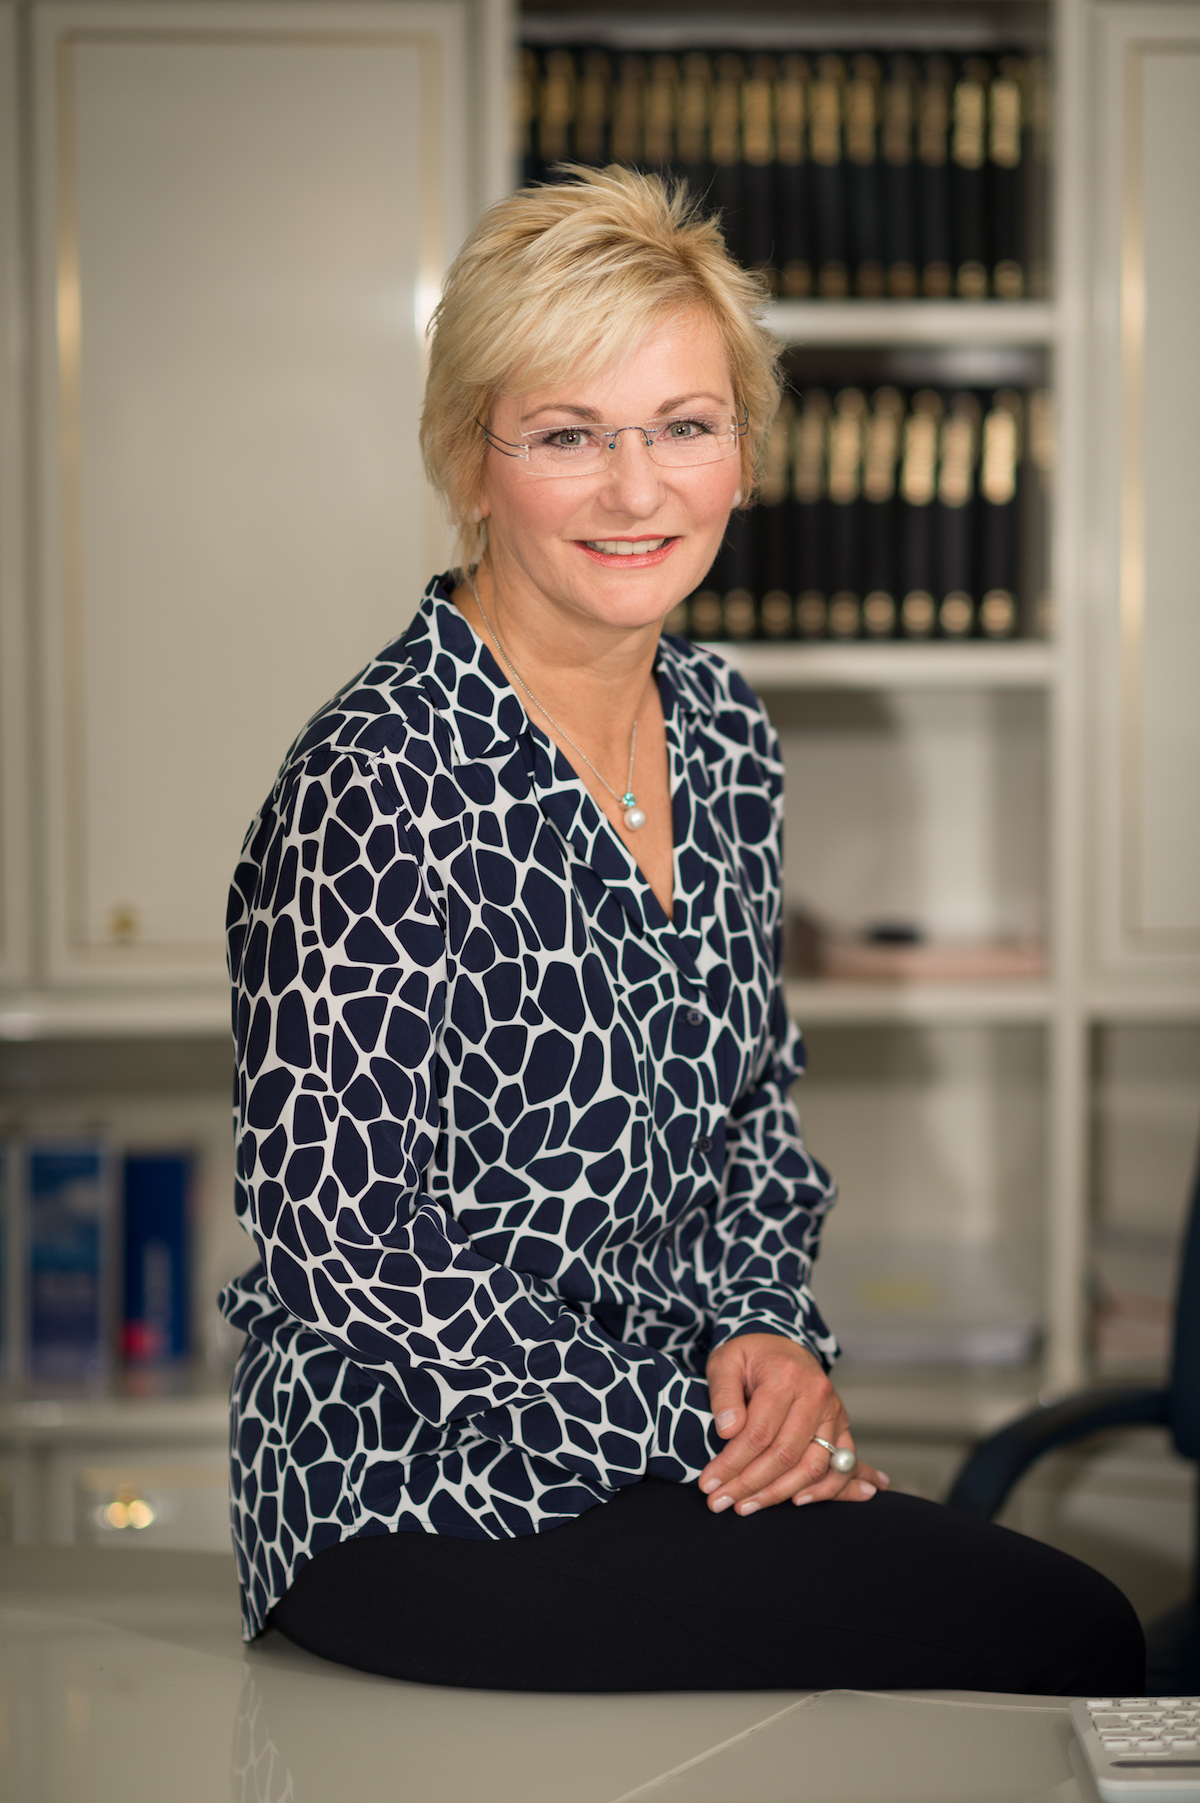 Marlis Weidtmann, CEO and Managing Director of Effecten-Spiegel AG